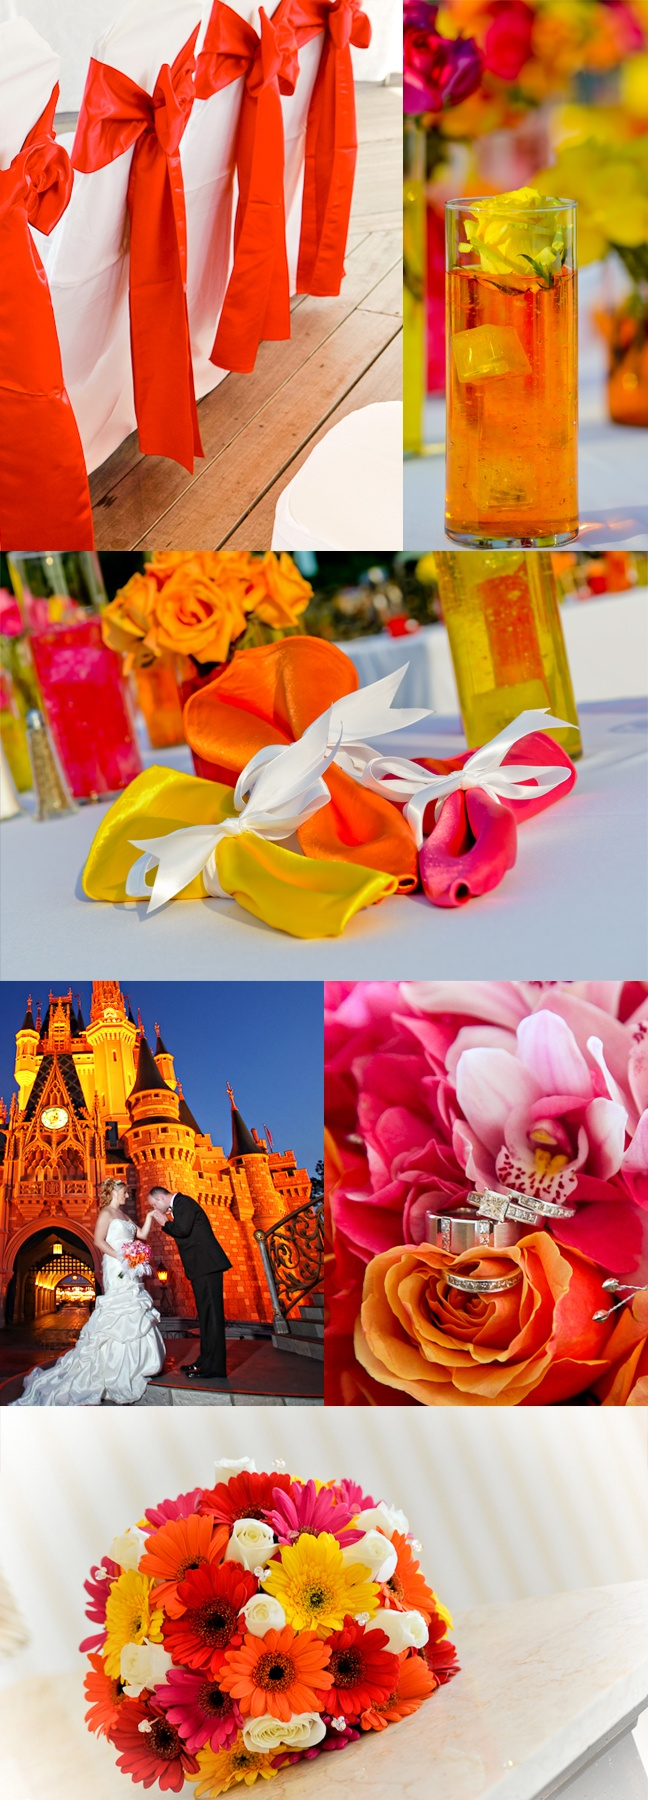 212 best Wedding Themes! images on Pinterest | Accessories ...